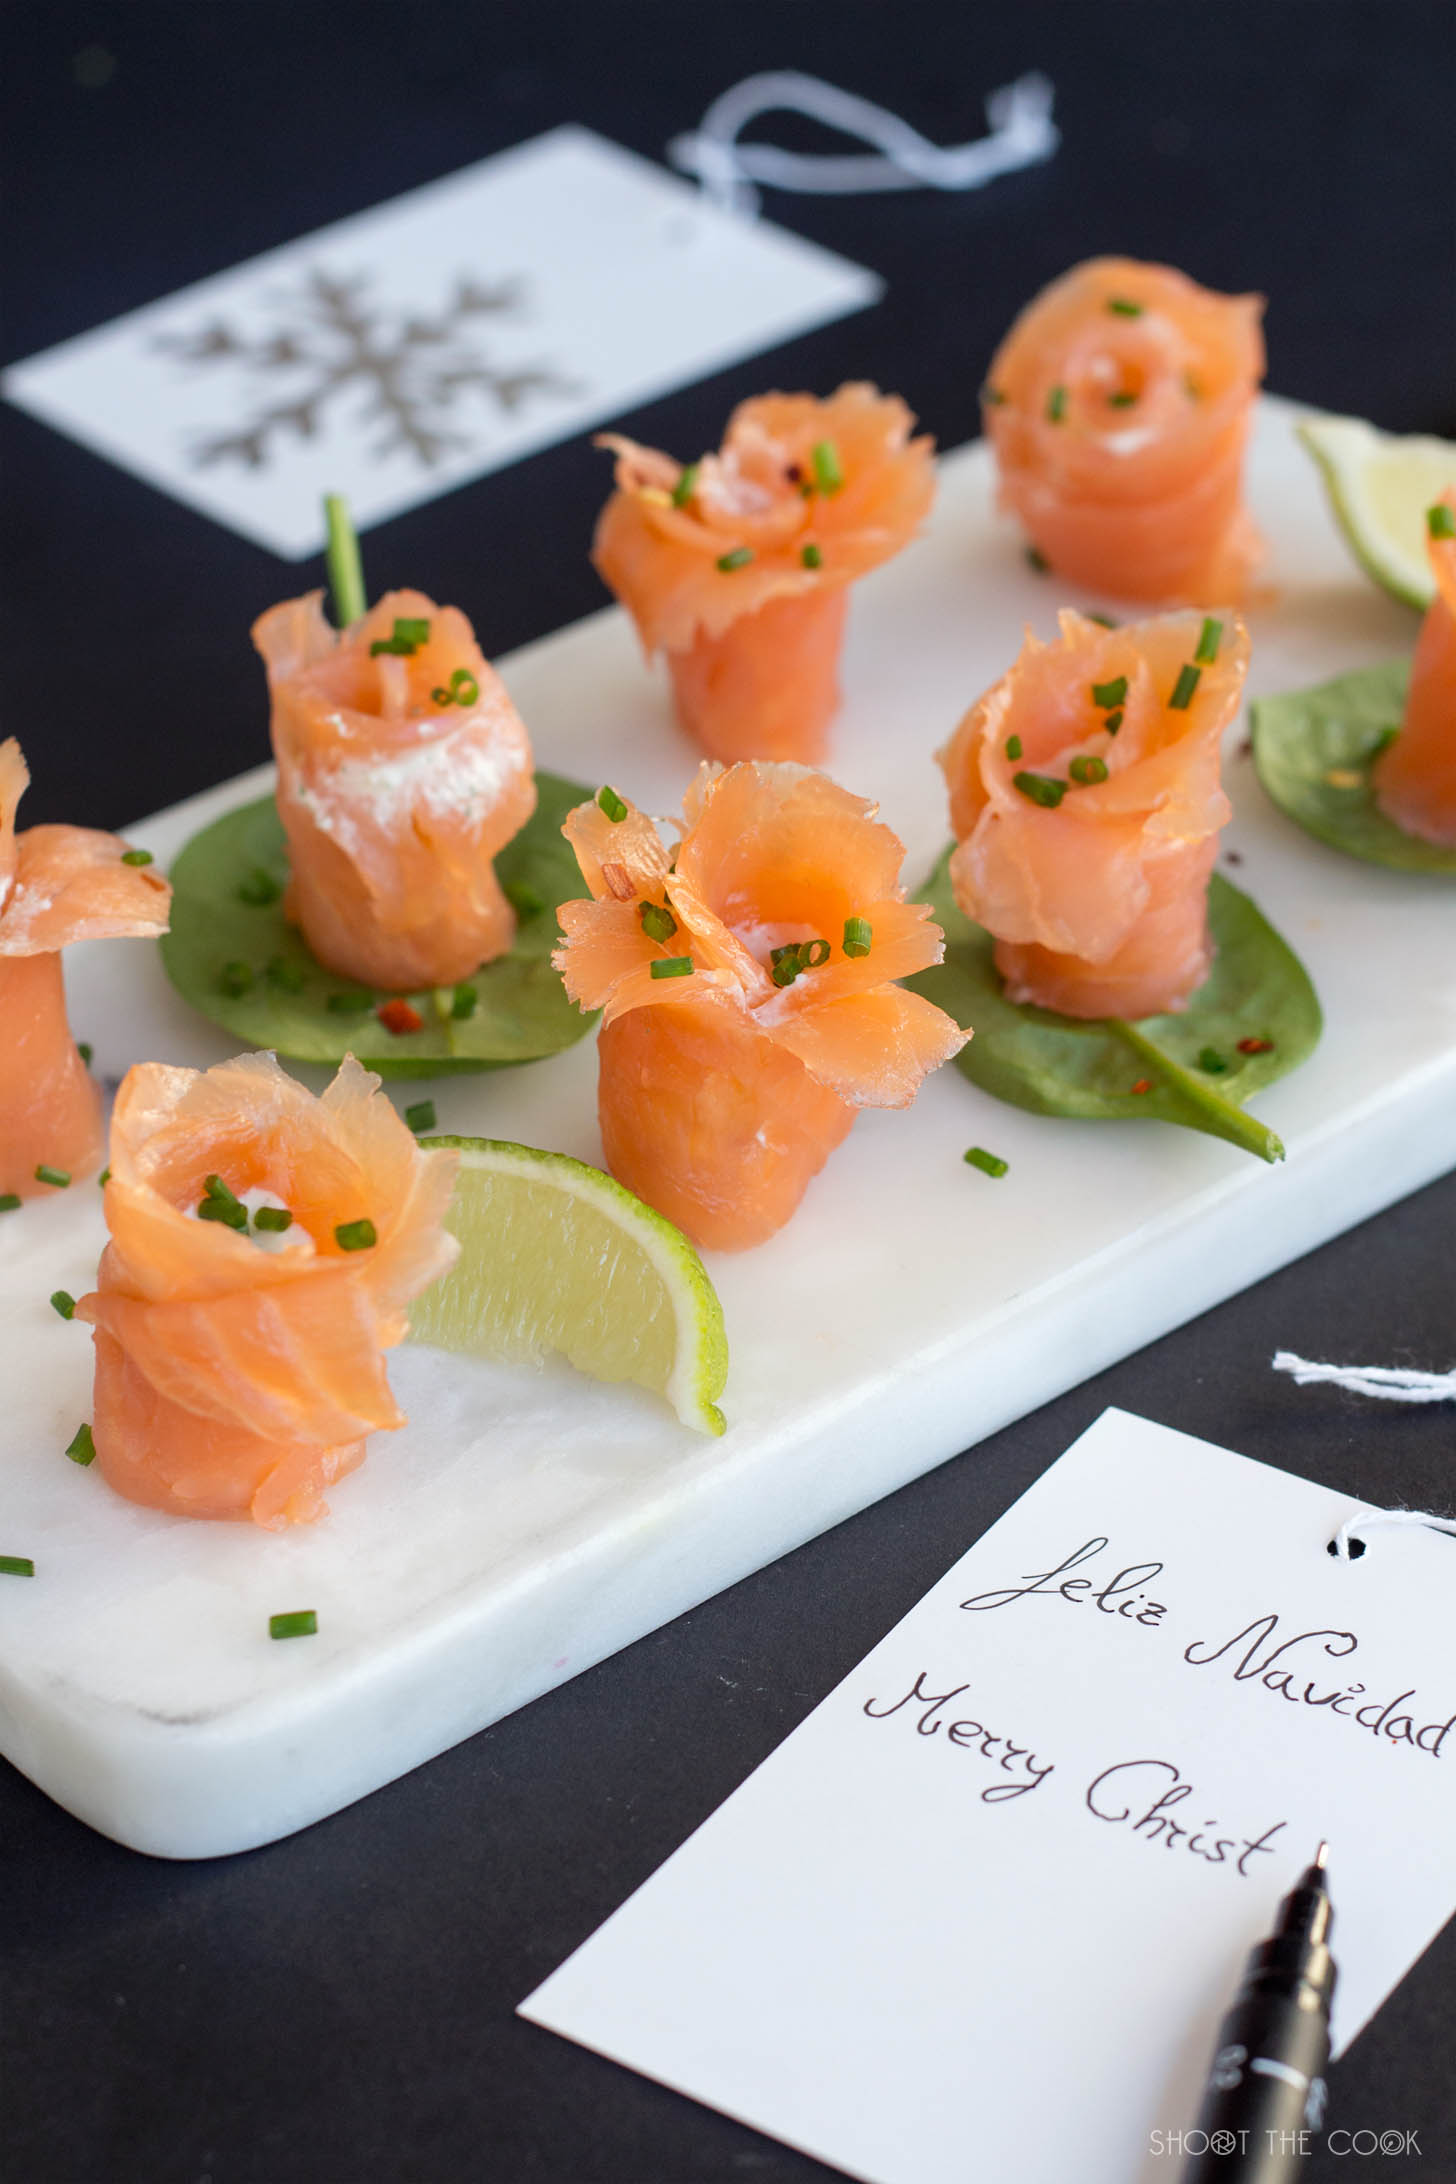 Rollitos de salm n con forma de flor shoot the cook for Canape de salmon